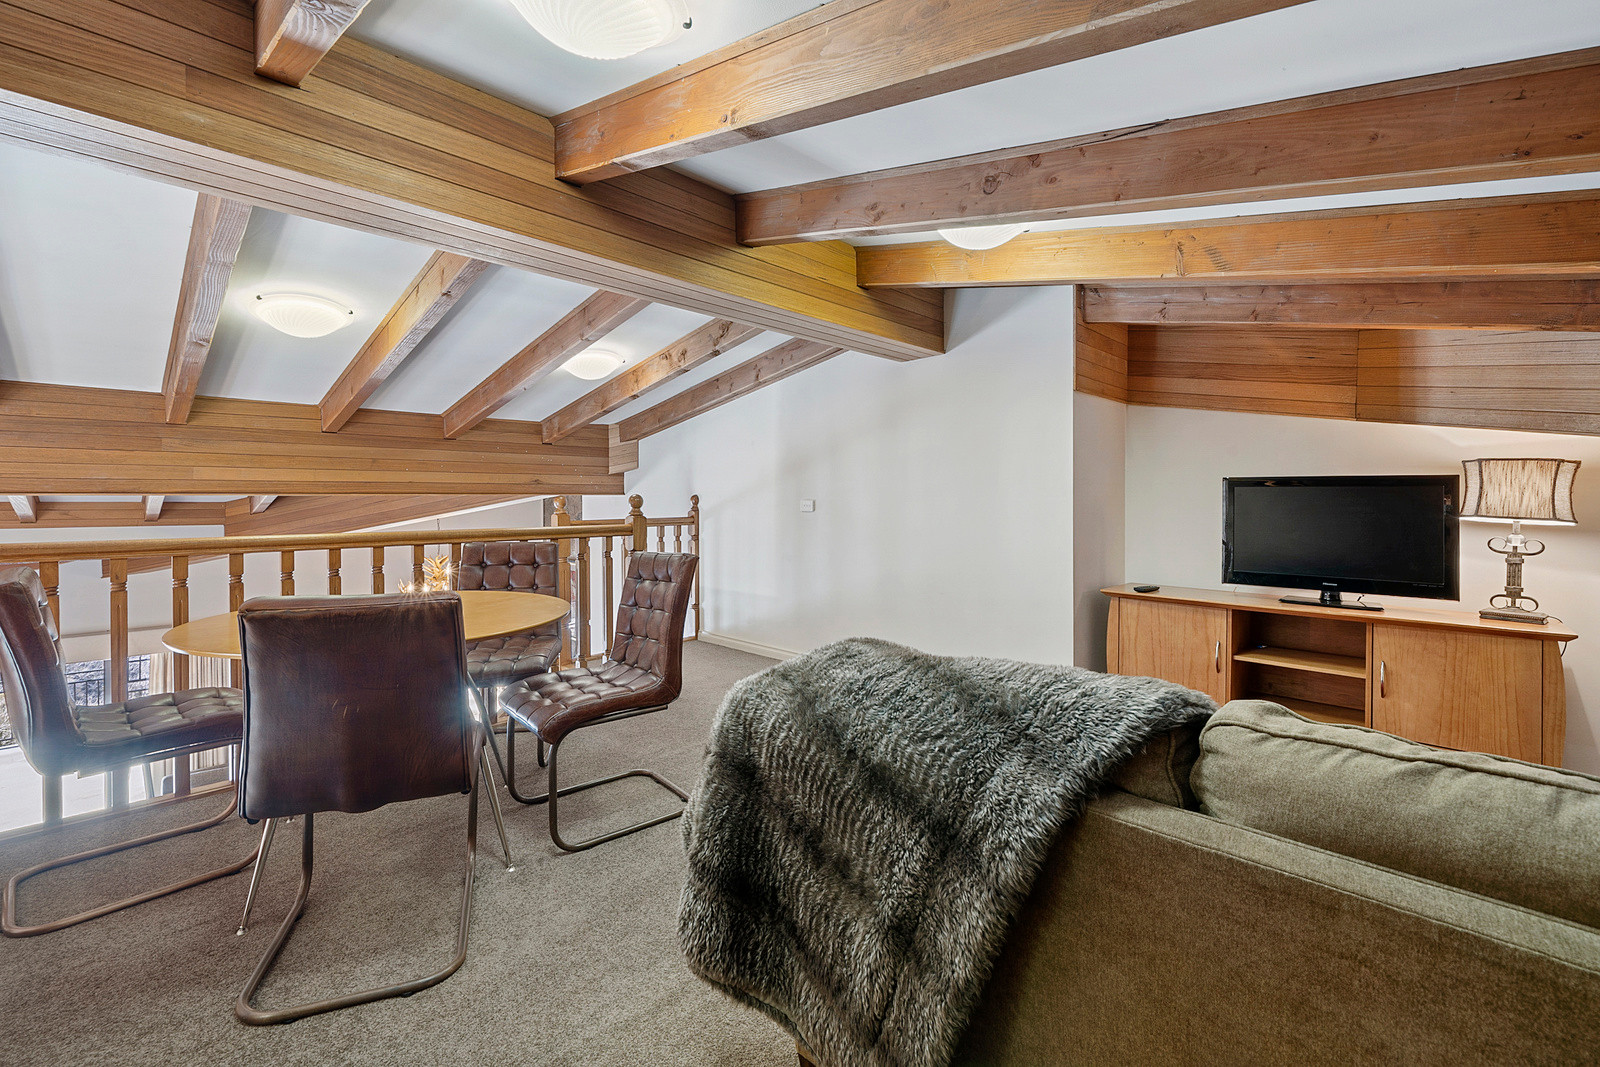 009_Open2view_ID632124-St_Moritz_pension